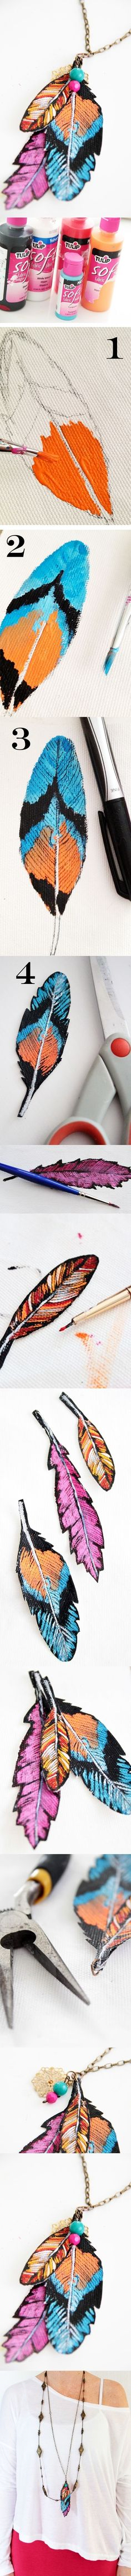 DIY :: fabric feathers from canvas DIY: faux feather pendants by Alisa Burke (fabric paint on fabric) Fabric Feathers, Painted Feathers, Painted Leaves, Ideas Joyería, Craft Ideas, Fun Crafts, Arts And Crafts, Do It Yourself Jewelry, Ideias Diy